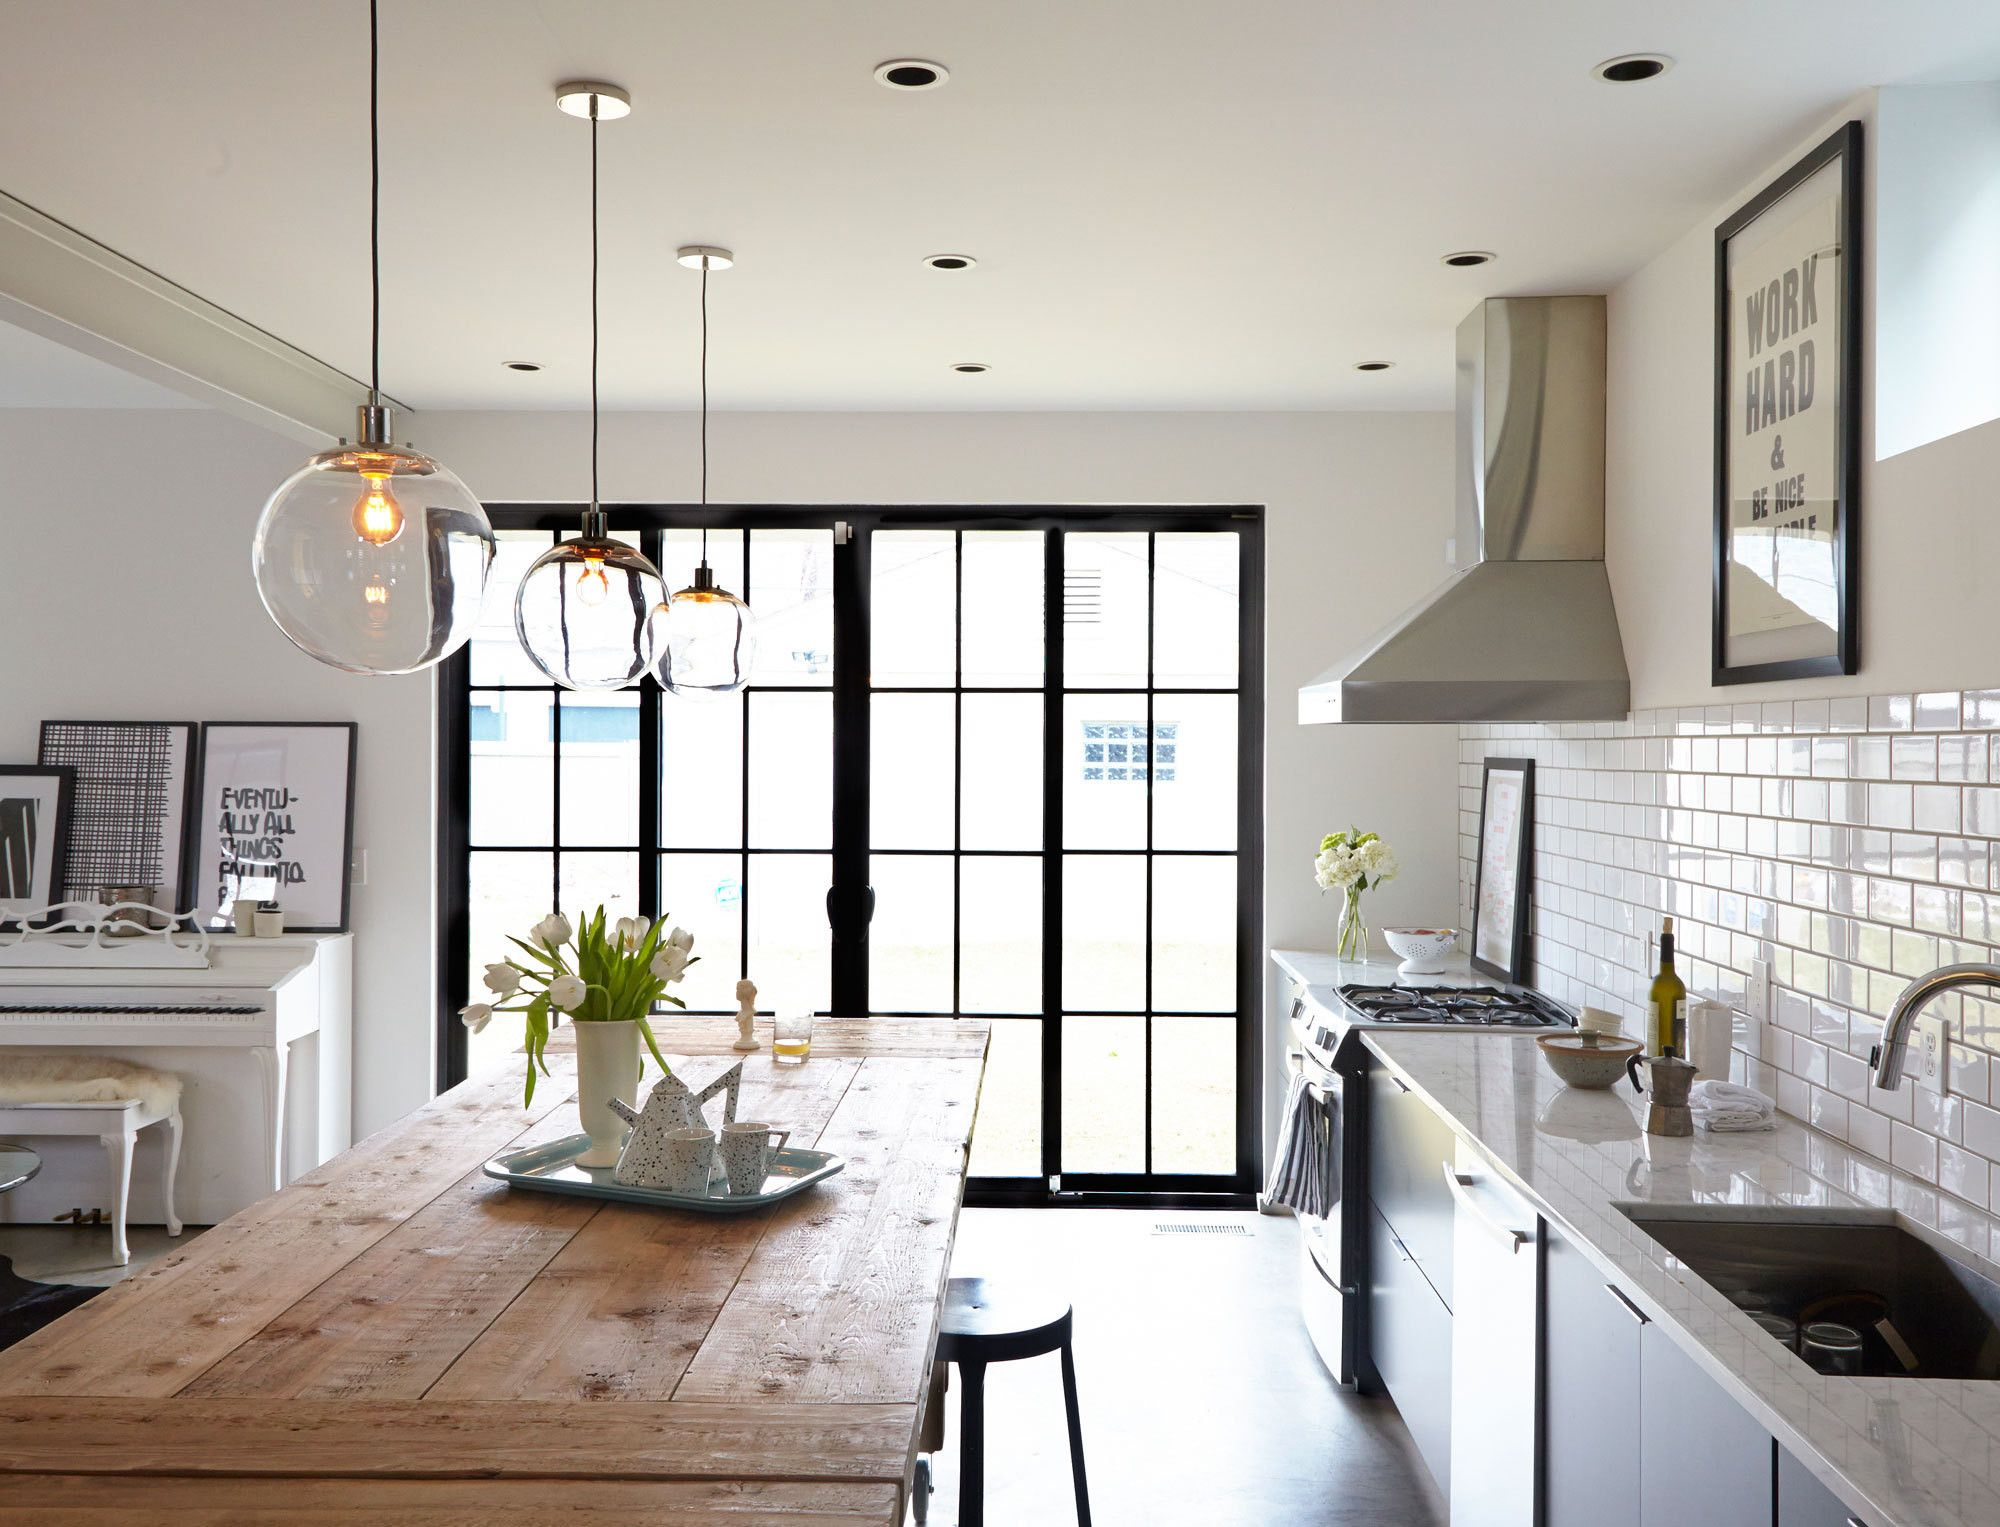 unit london residential pendant kitchen road uk house stock thurleigh island modern clapham photo above lights with